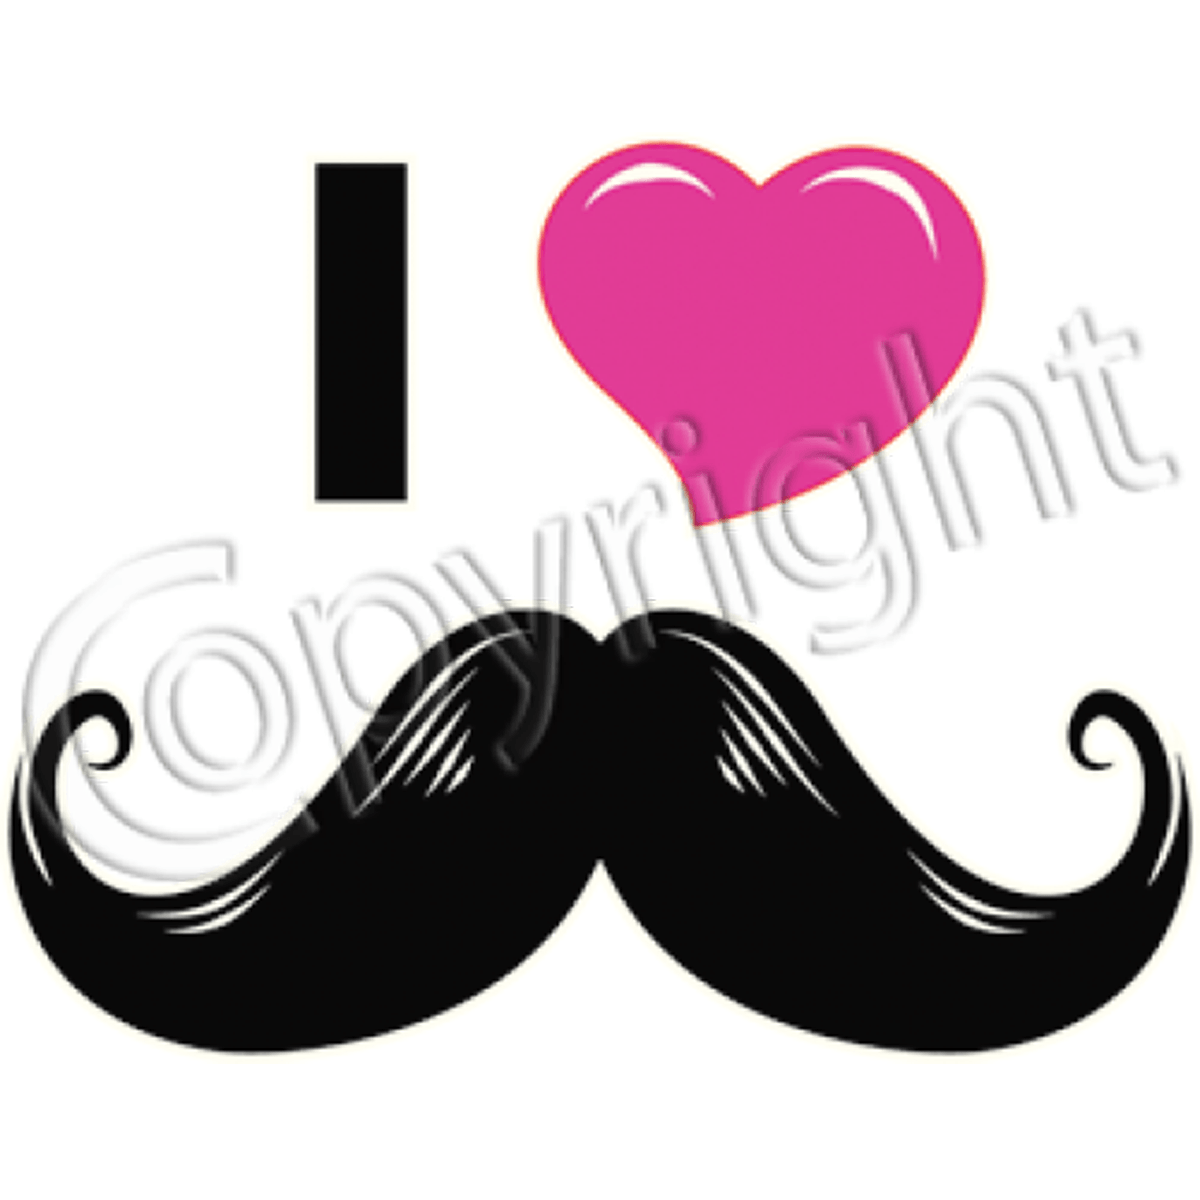 T-shirt homme manches courtes - I love moustaches - coeur rose - 11618